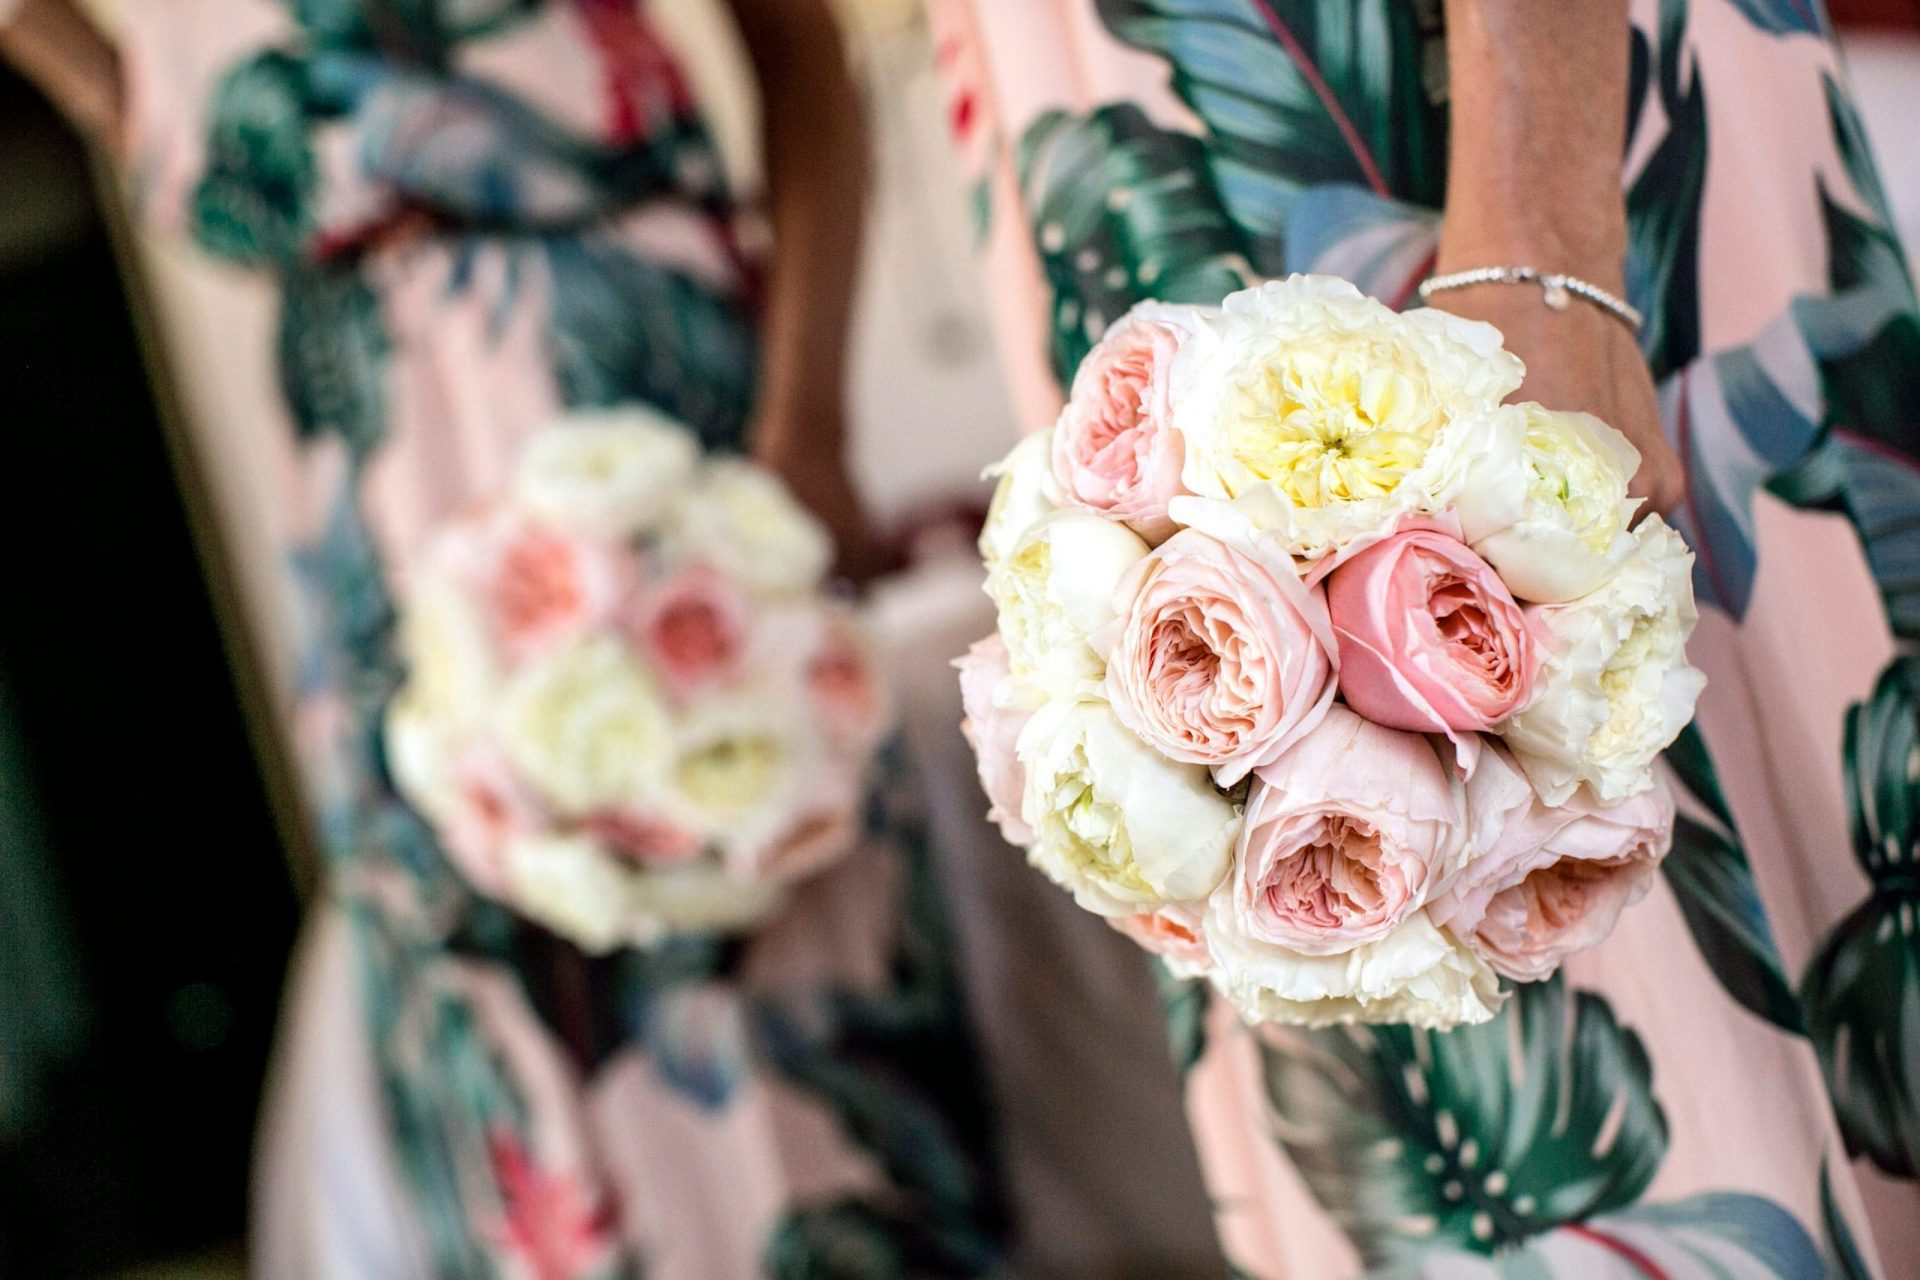 Lisa and Daniel, luxury wedding in Cala di Volpe, flower bouquet